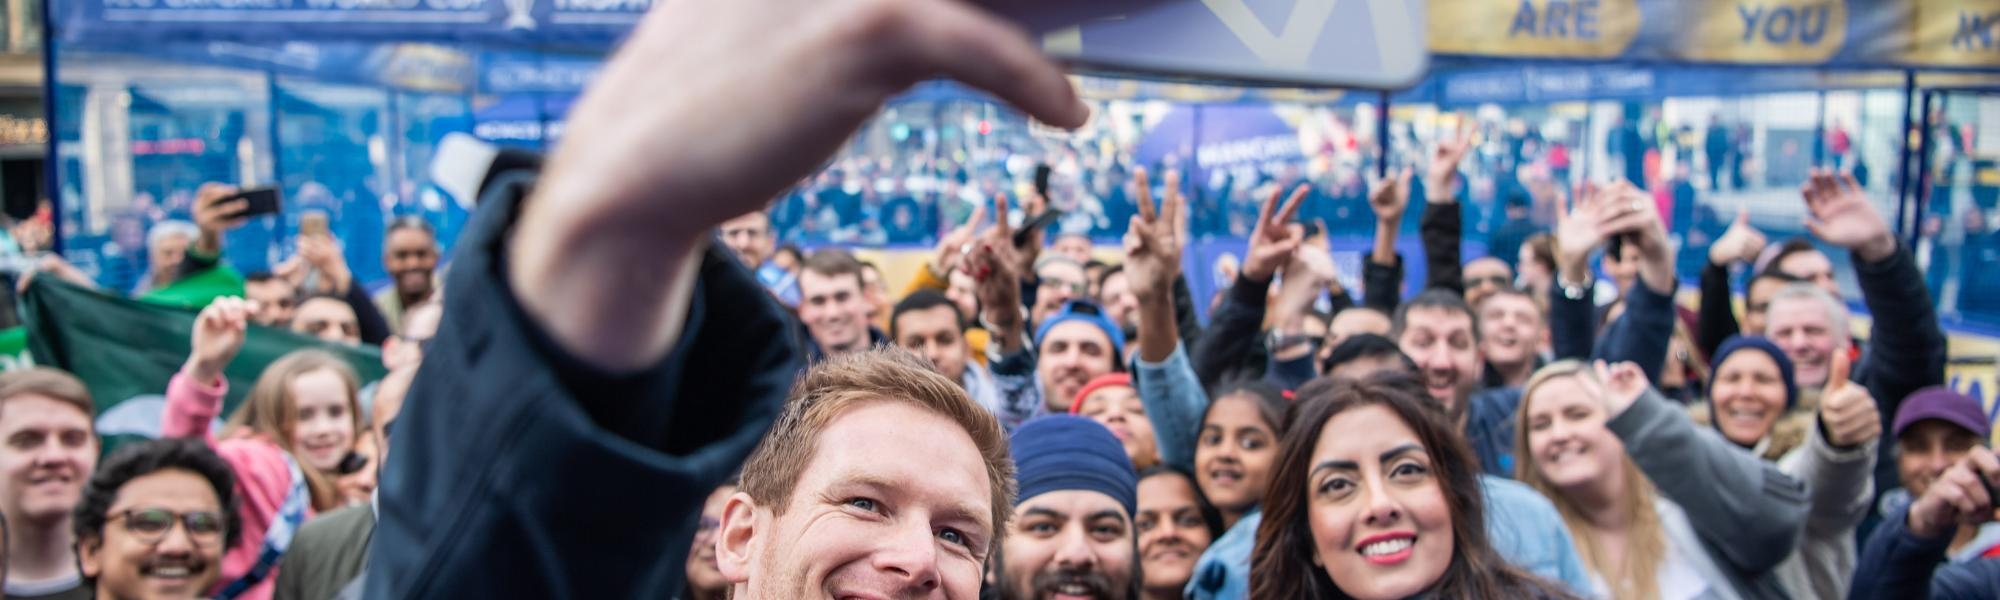 Eoin Morgan was a special guest at the Super Saturday event in Manchester